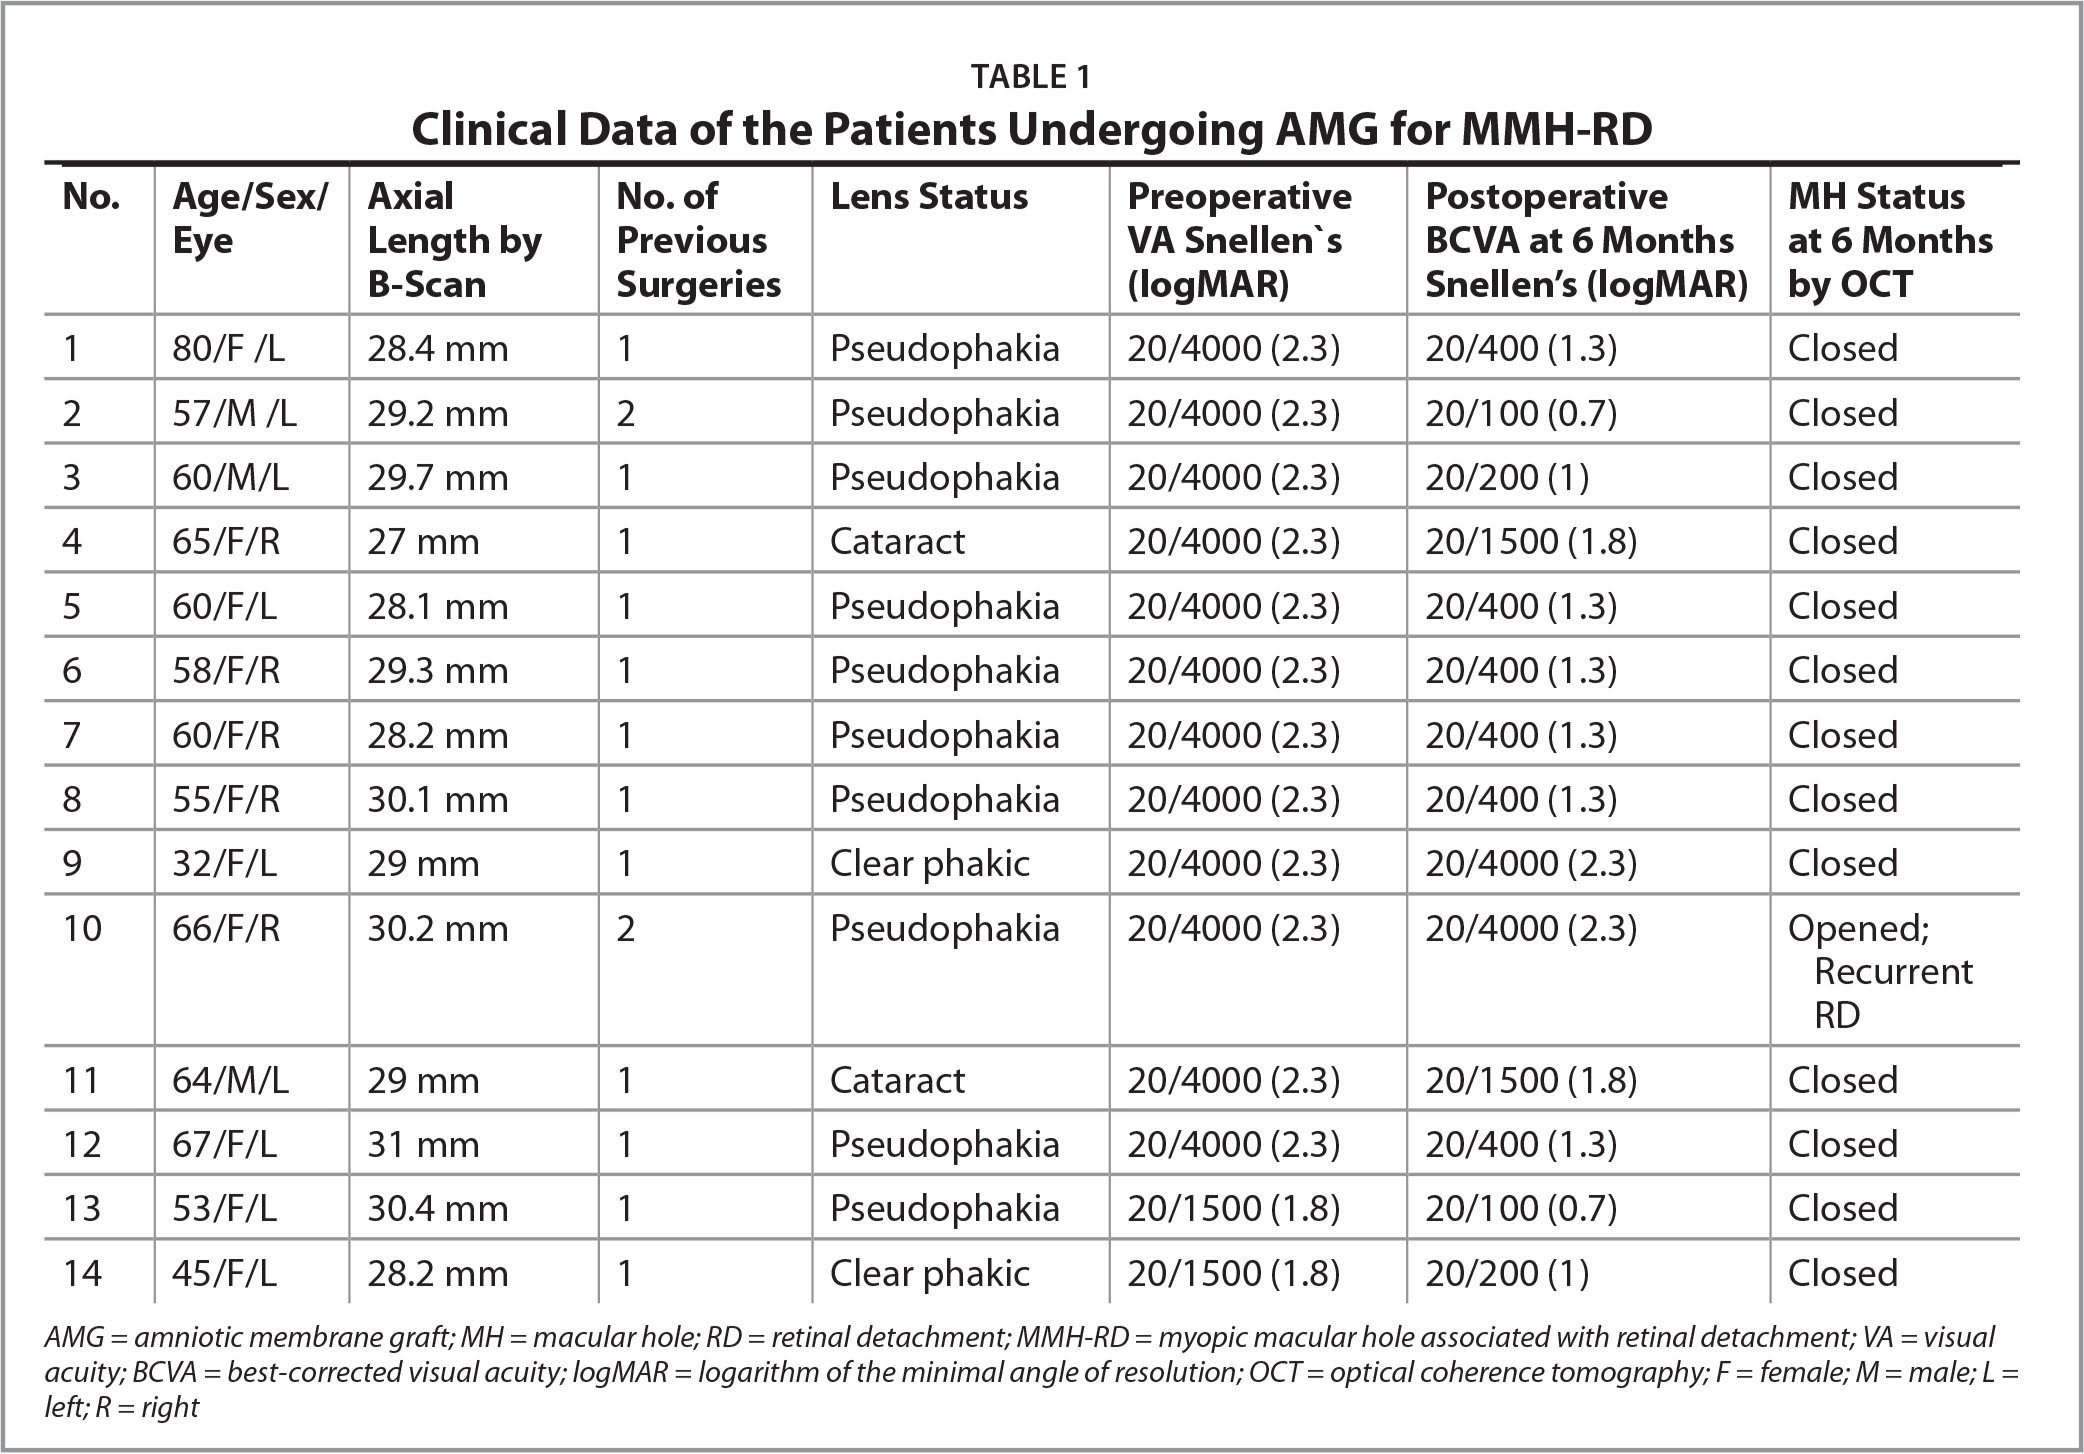 Clinical Data of the Patients Undergoing AMG for MMH-RD